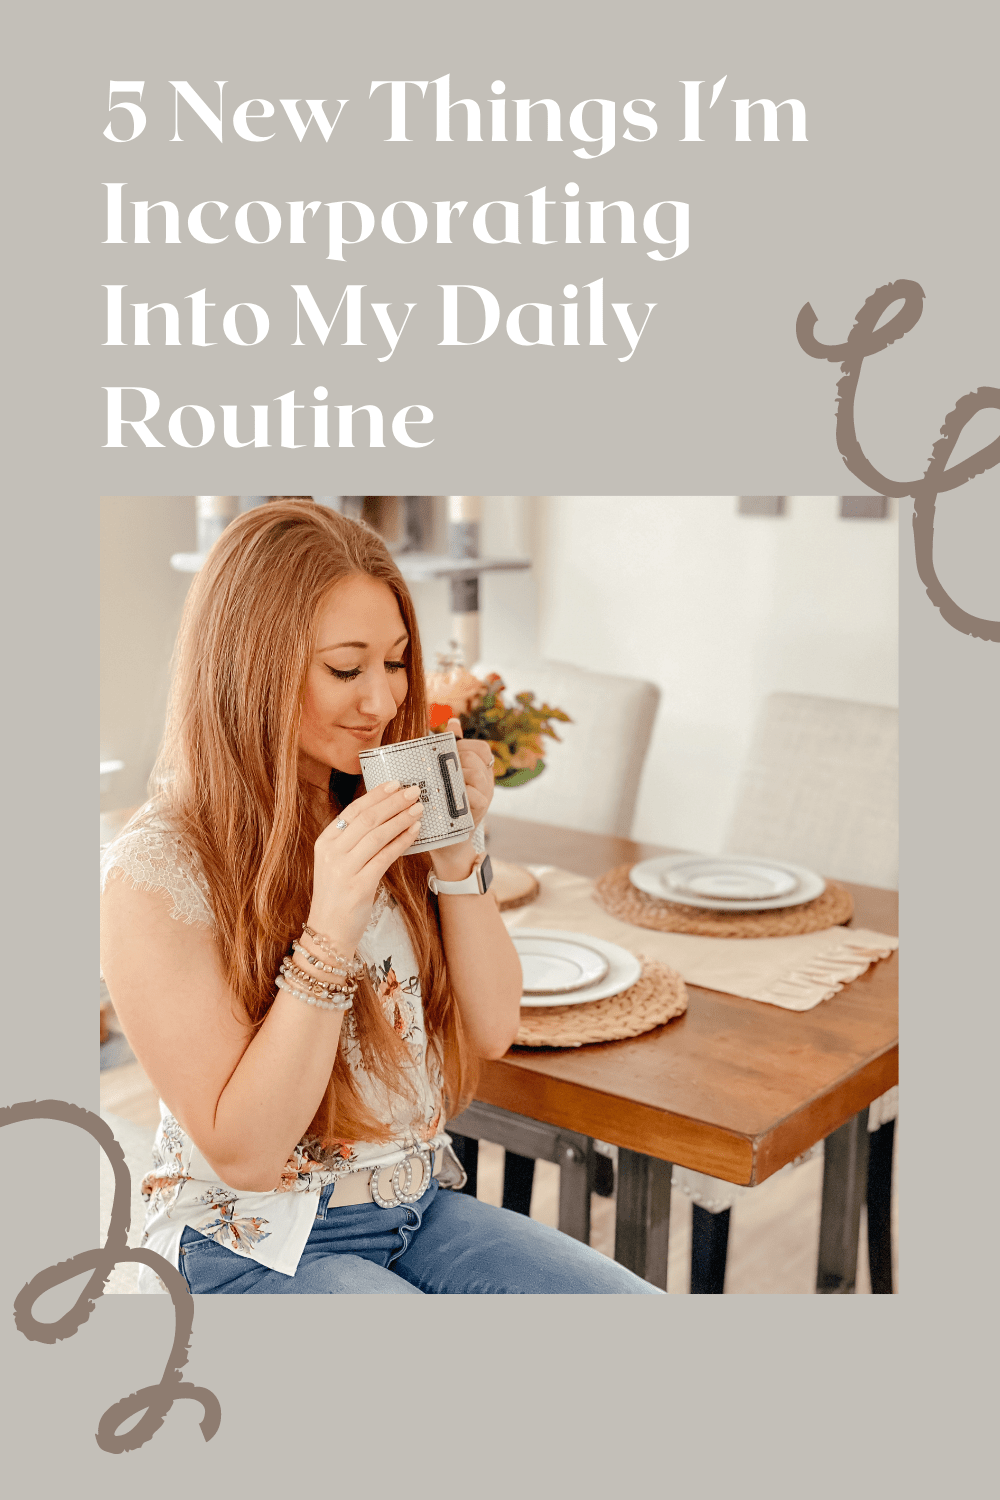 5 New Things I'm Incorporating Into My Weekly Routine Pinterest Pin | Sipping coffee at the table in the morning